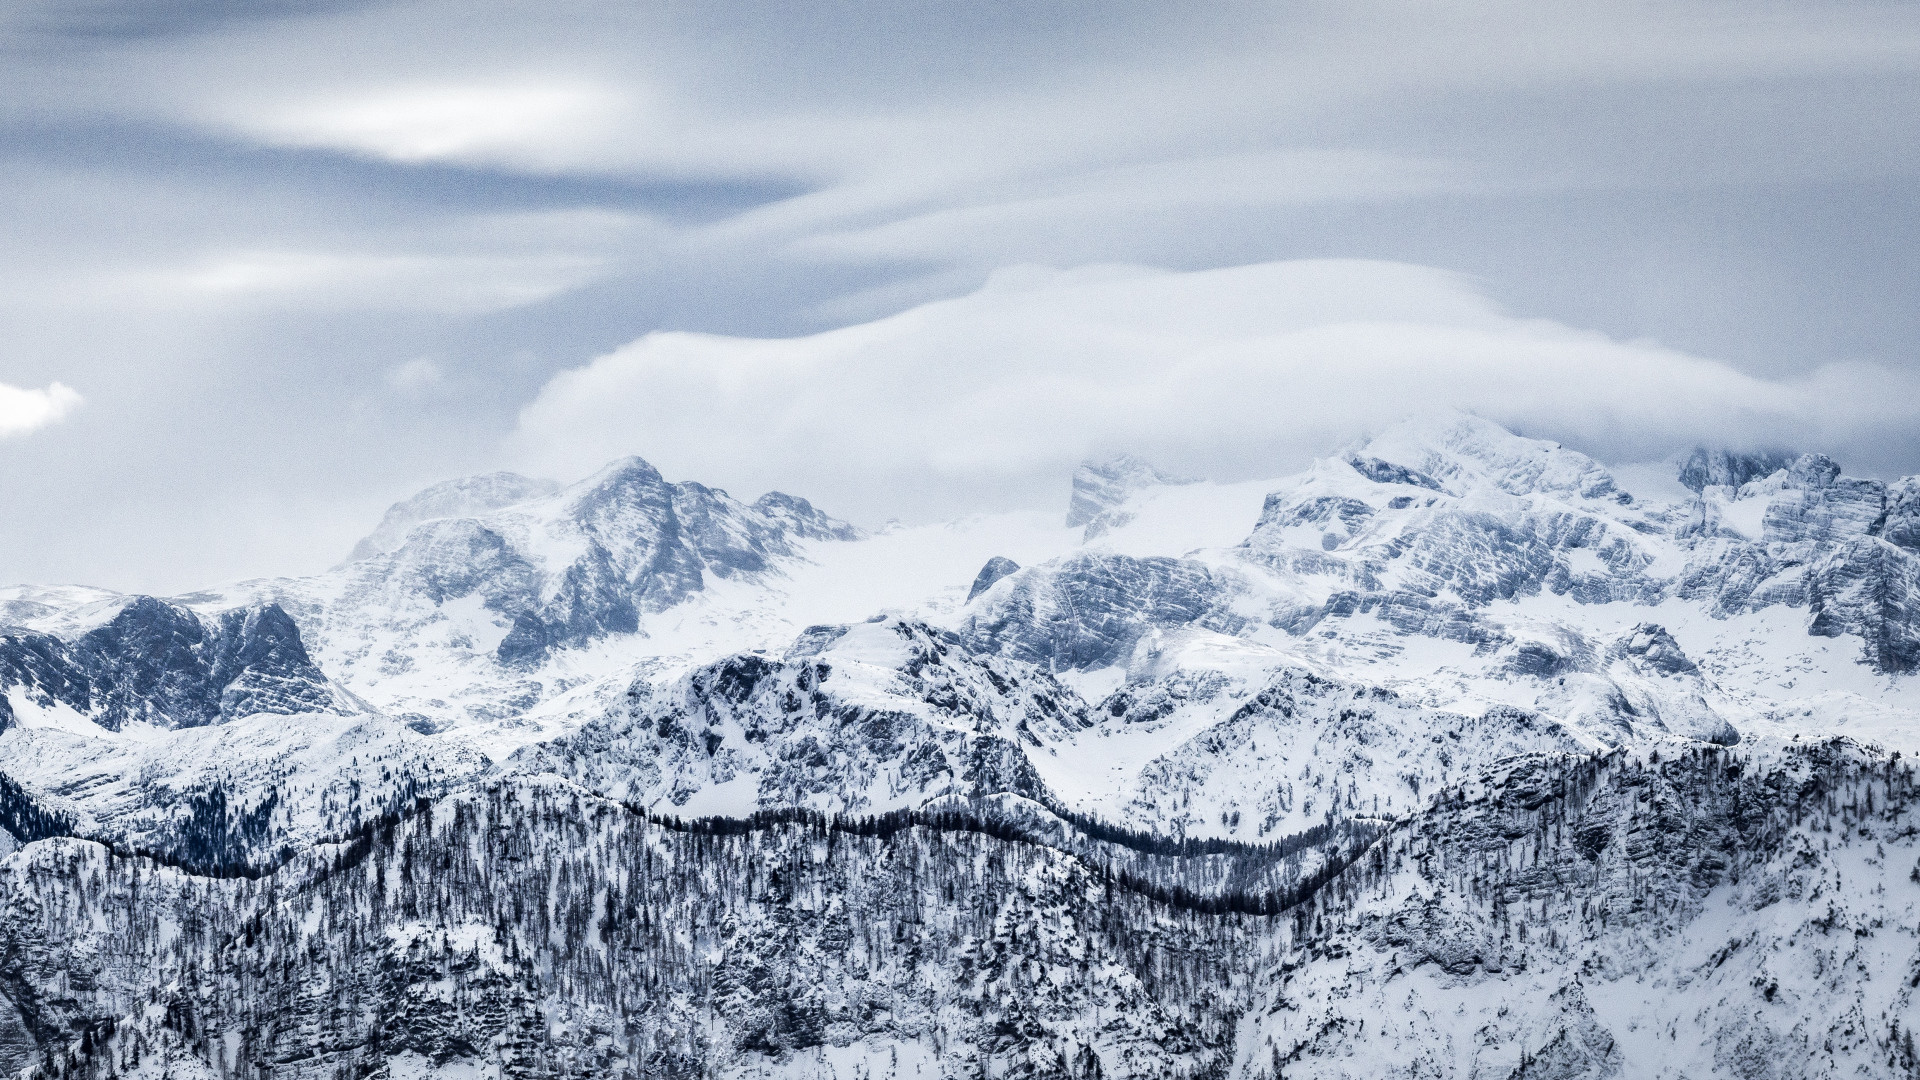 Res: 1920x1080, Amazing Nature Mountain Grey Clouds Snowy Peak